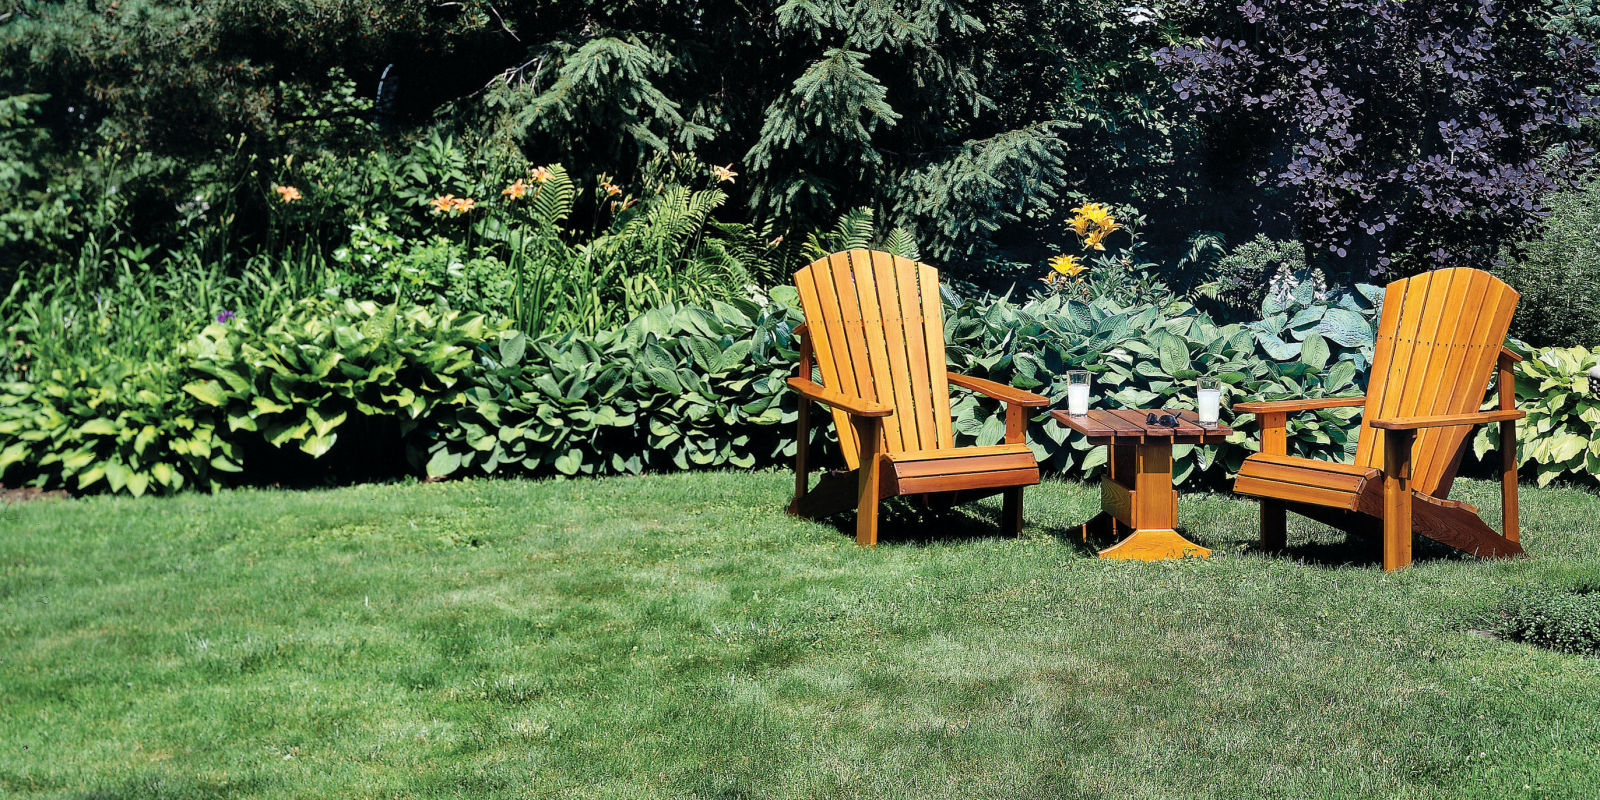 Easy Adirondack Chair Plans - How to Build Adirondack ...